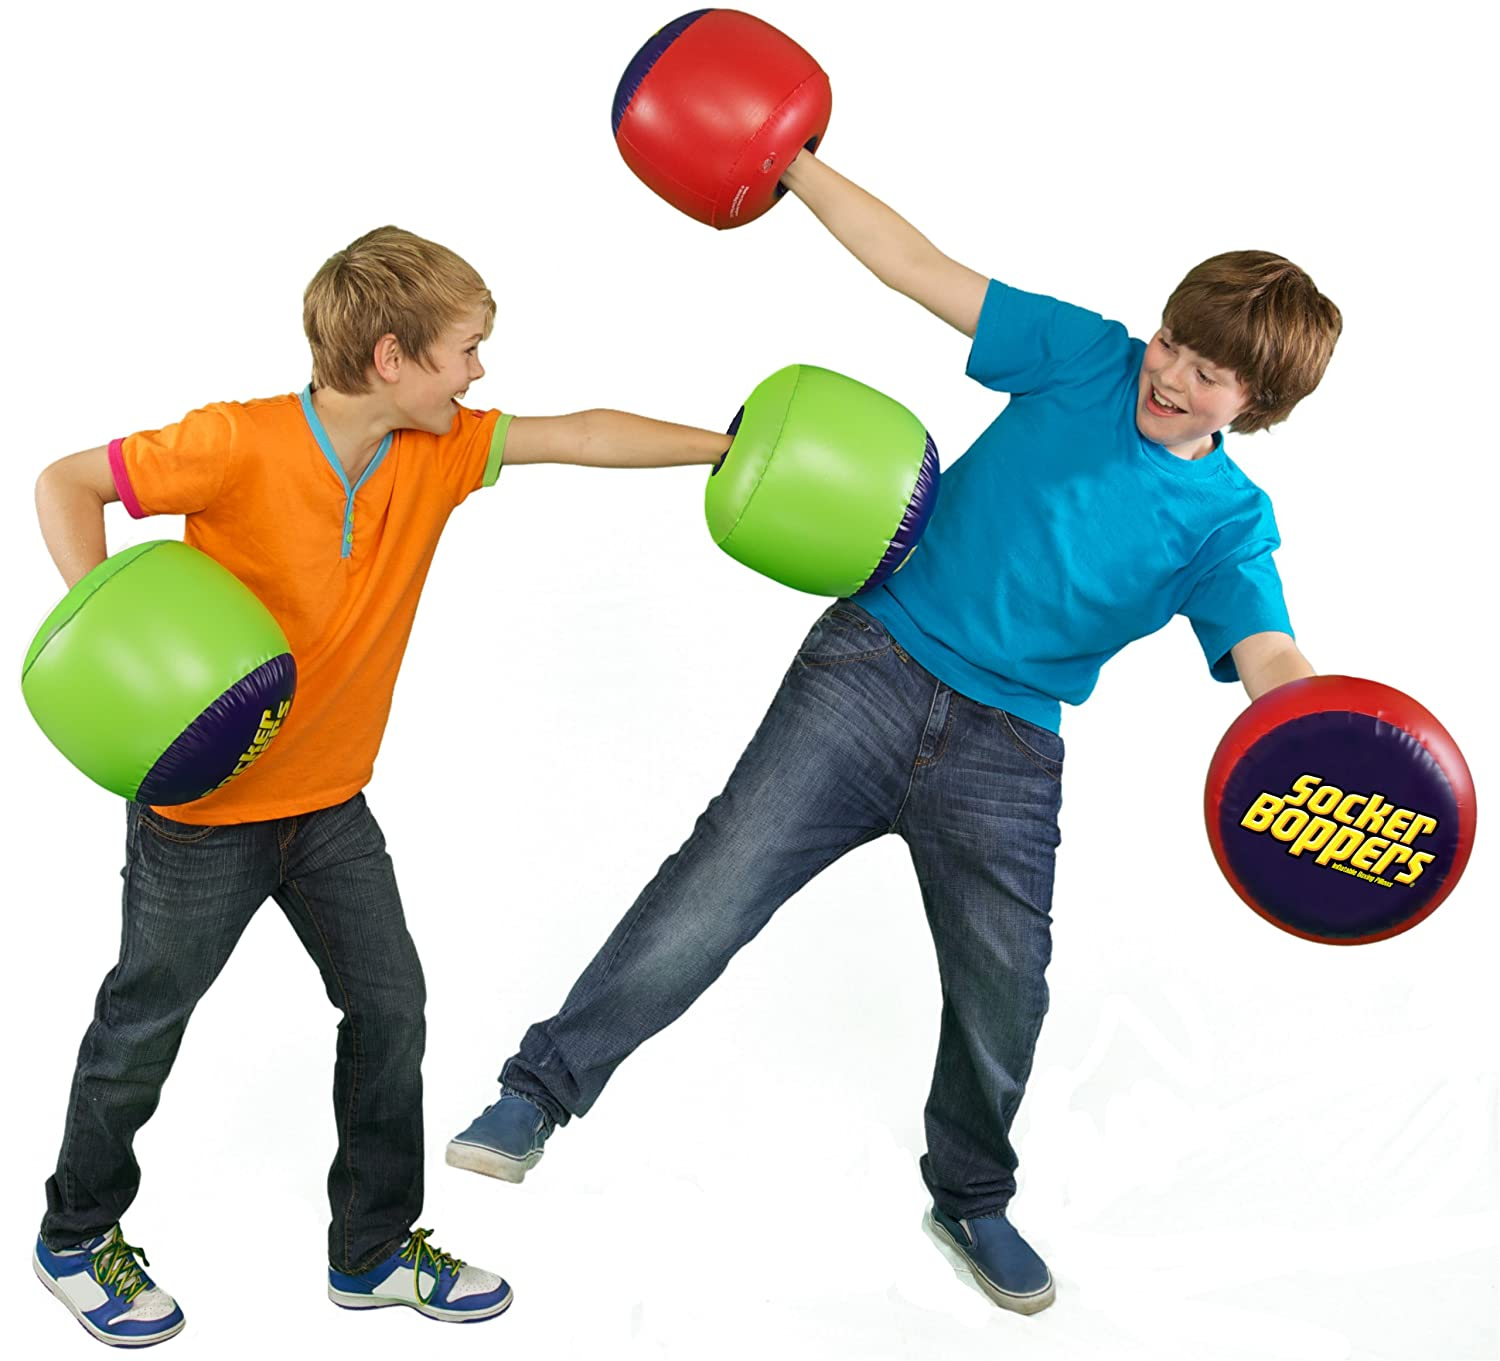 Socker Boppers Uk: Wicked Socker Boppers Inflatable Boxing Pillows (Assorted